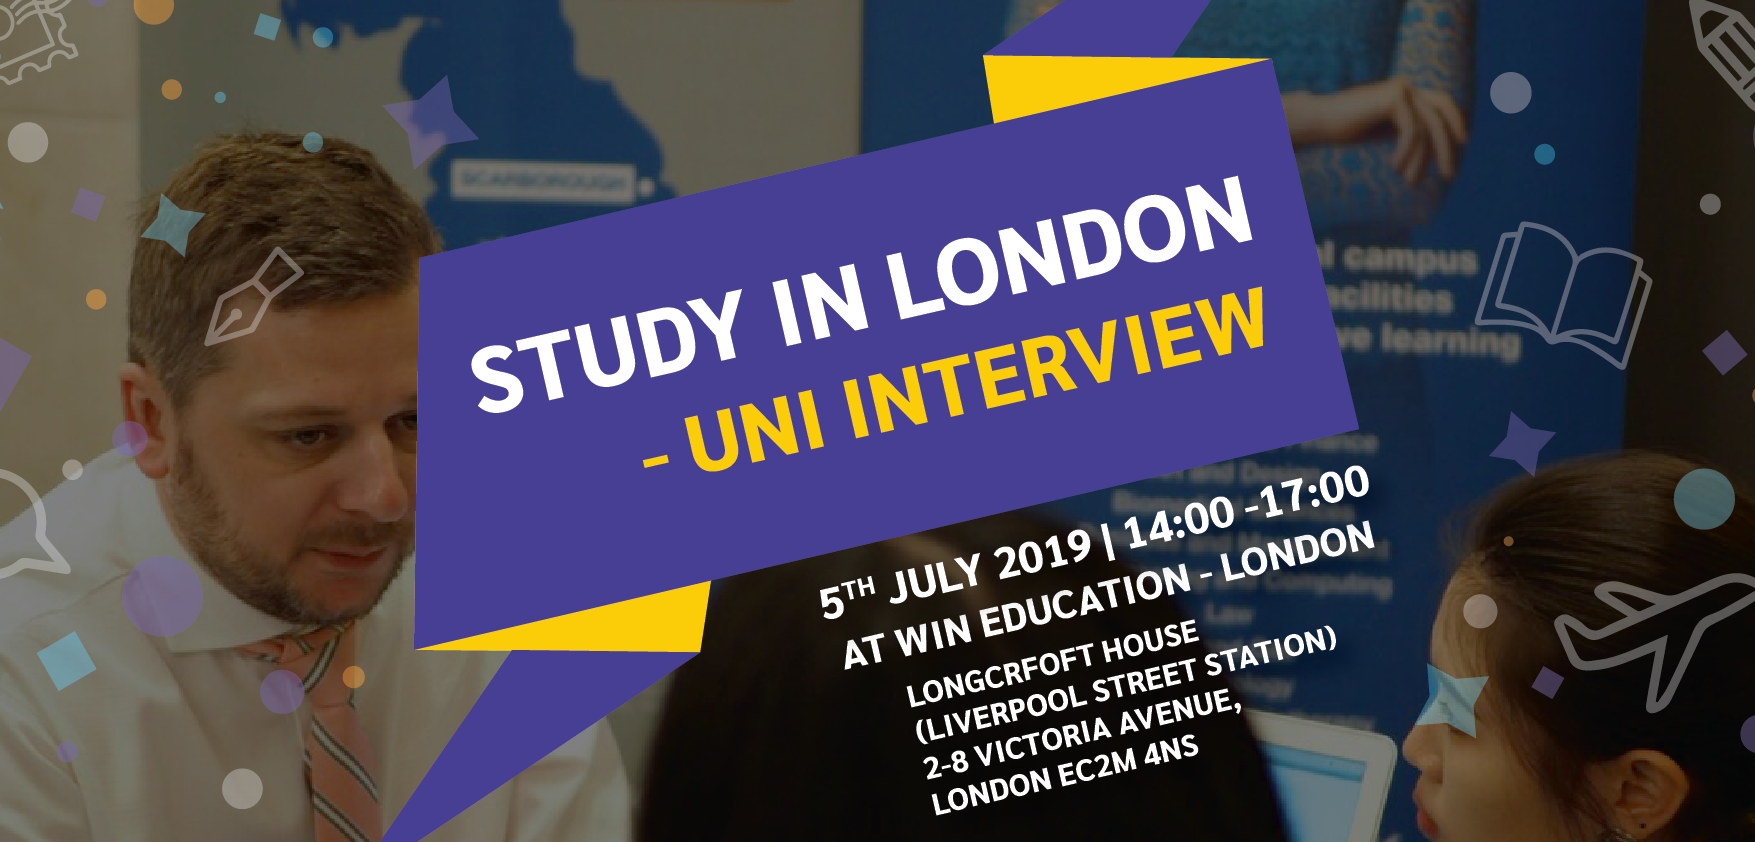 Study in London – Uni Interview